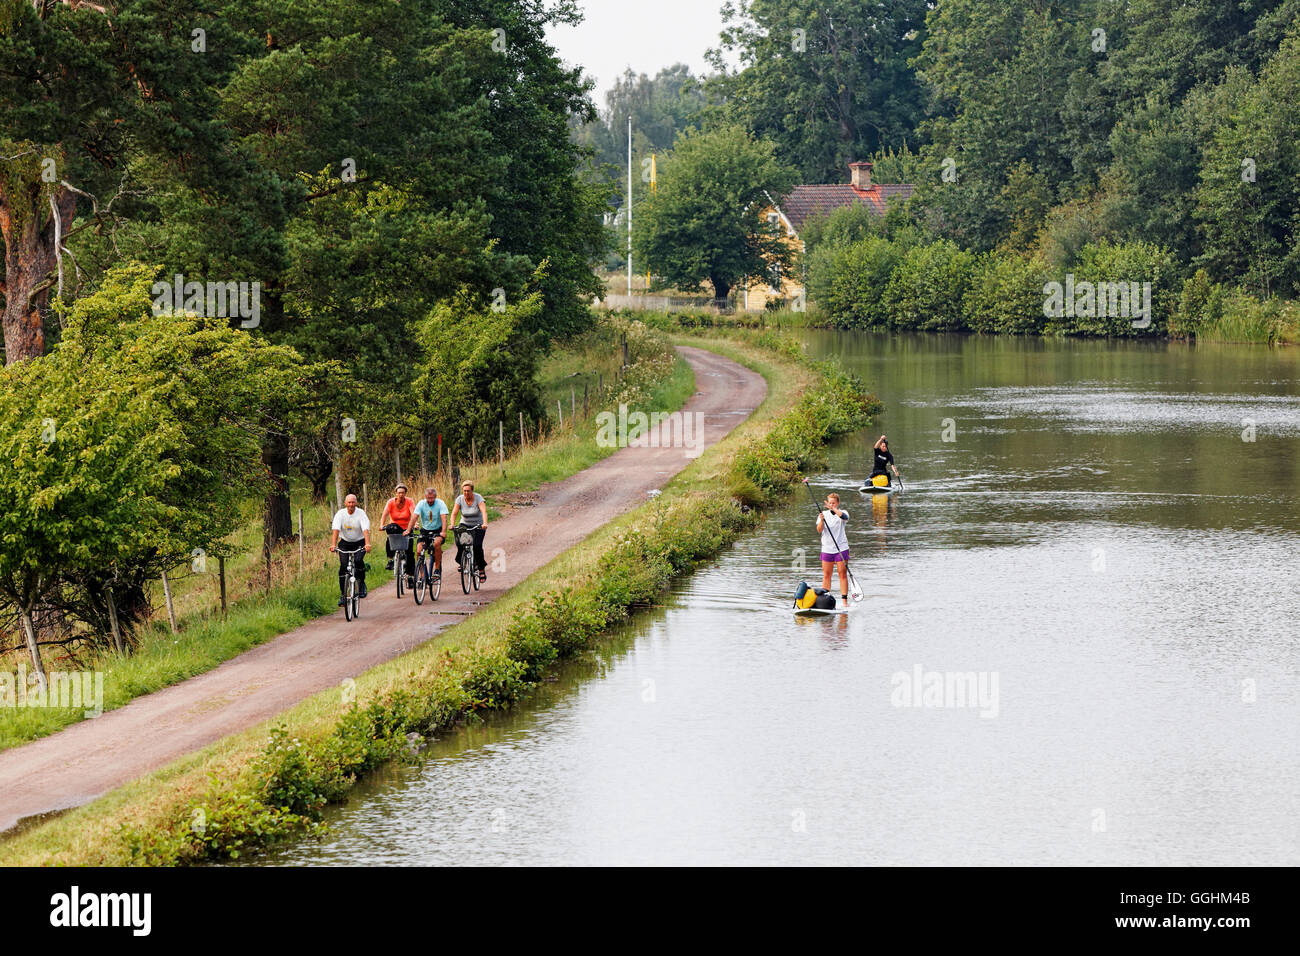 Gota canal is popular with cyclists and stand-up paddlers, Sweden - Stock Image